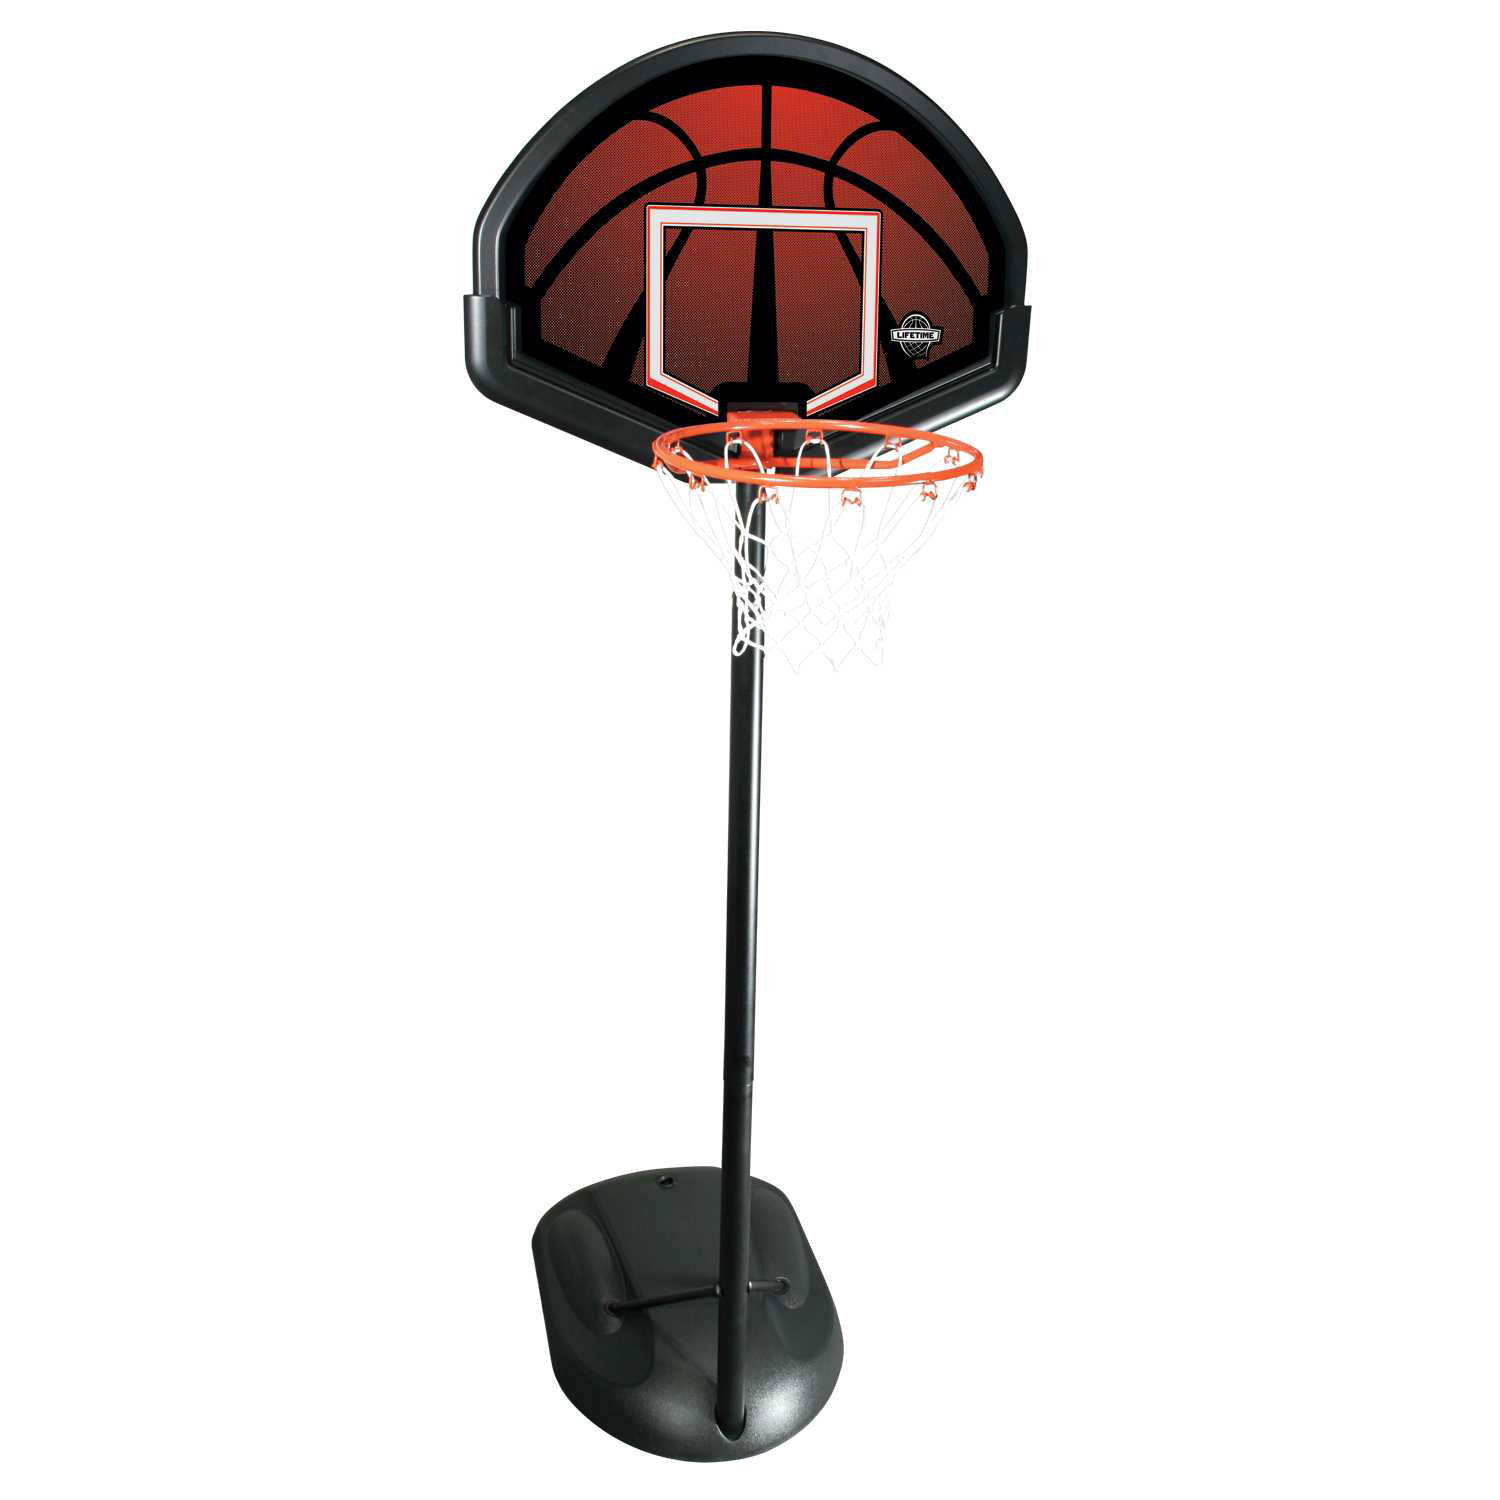 Toys R Us Childrens Chairs Lifetime Portable Basketball Hoop 90269 Youth System